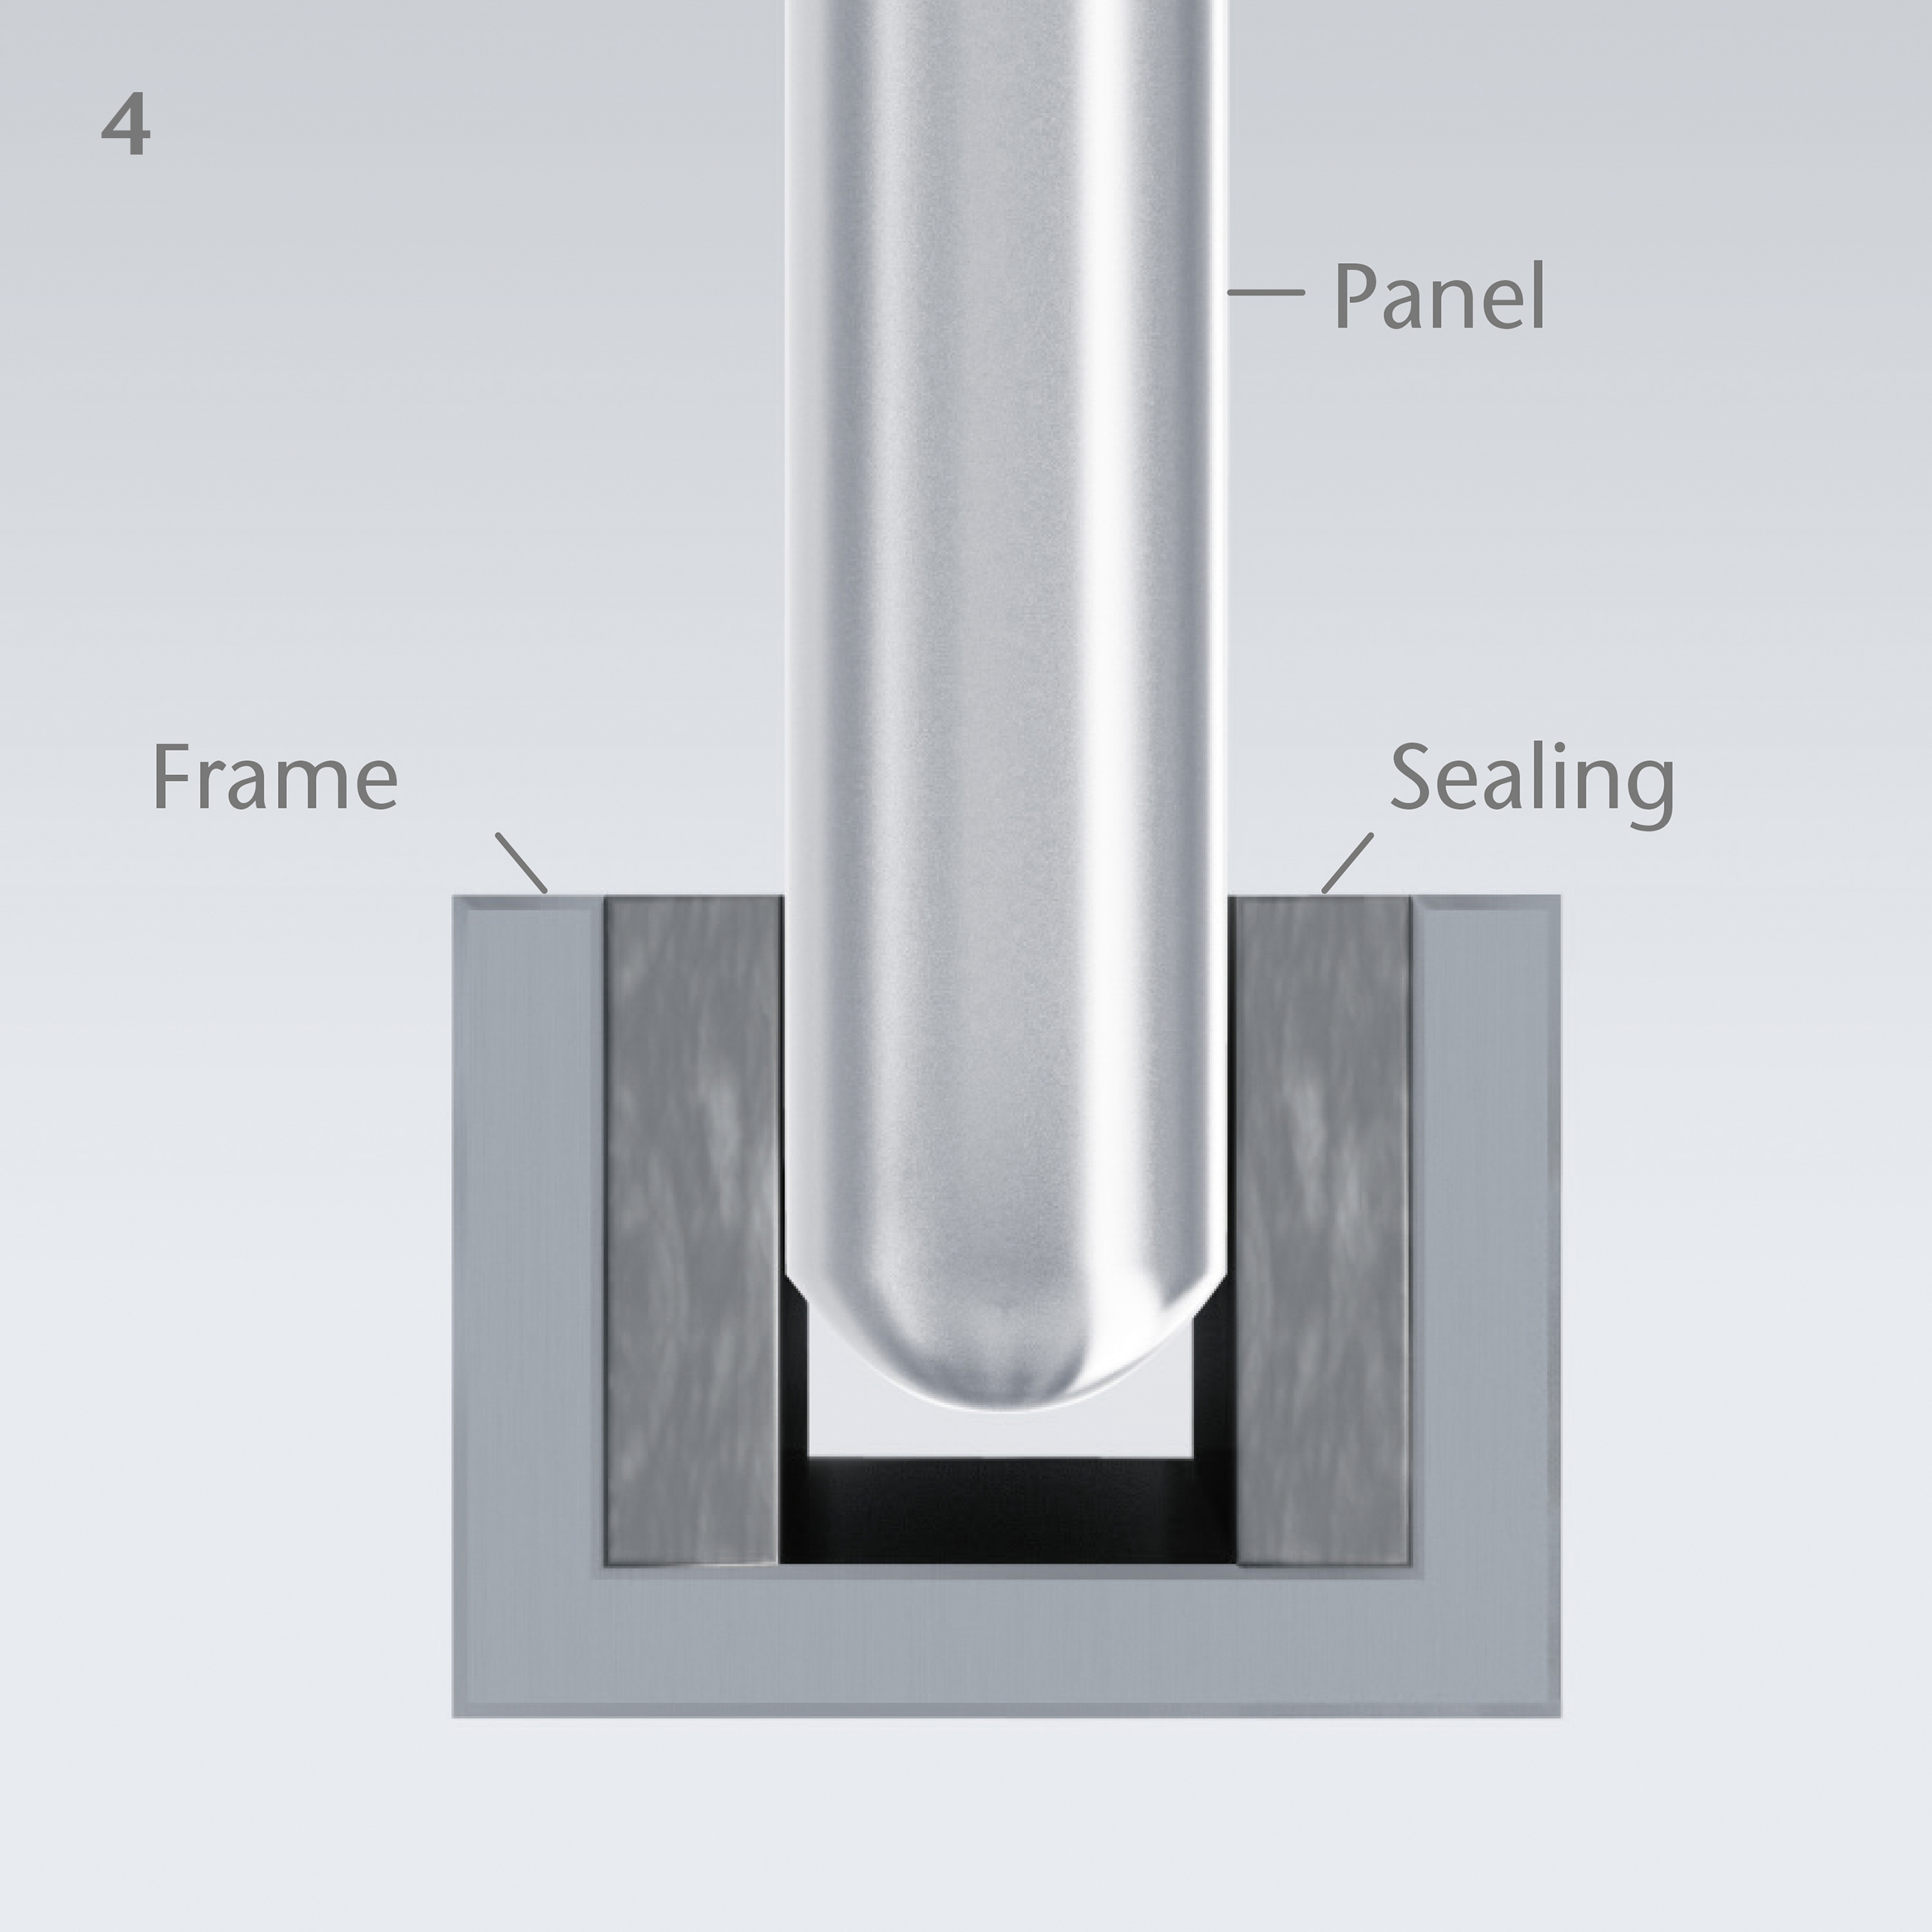 Diagram of how a panel of SCHOTT ROBAX® glass-ceramic fits inside a frame